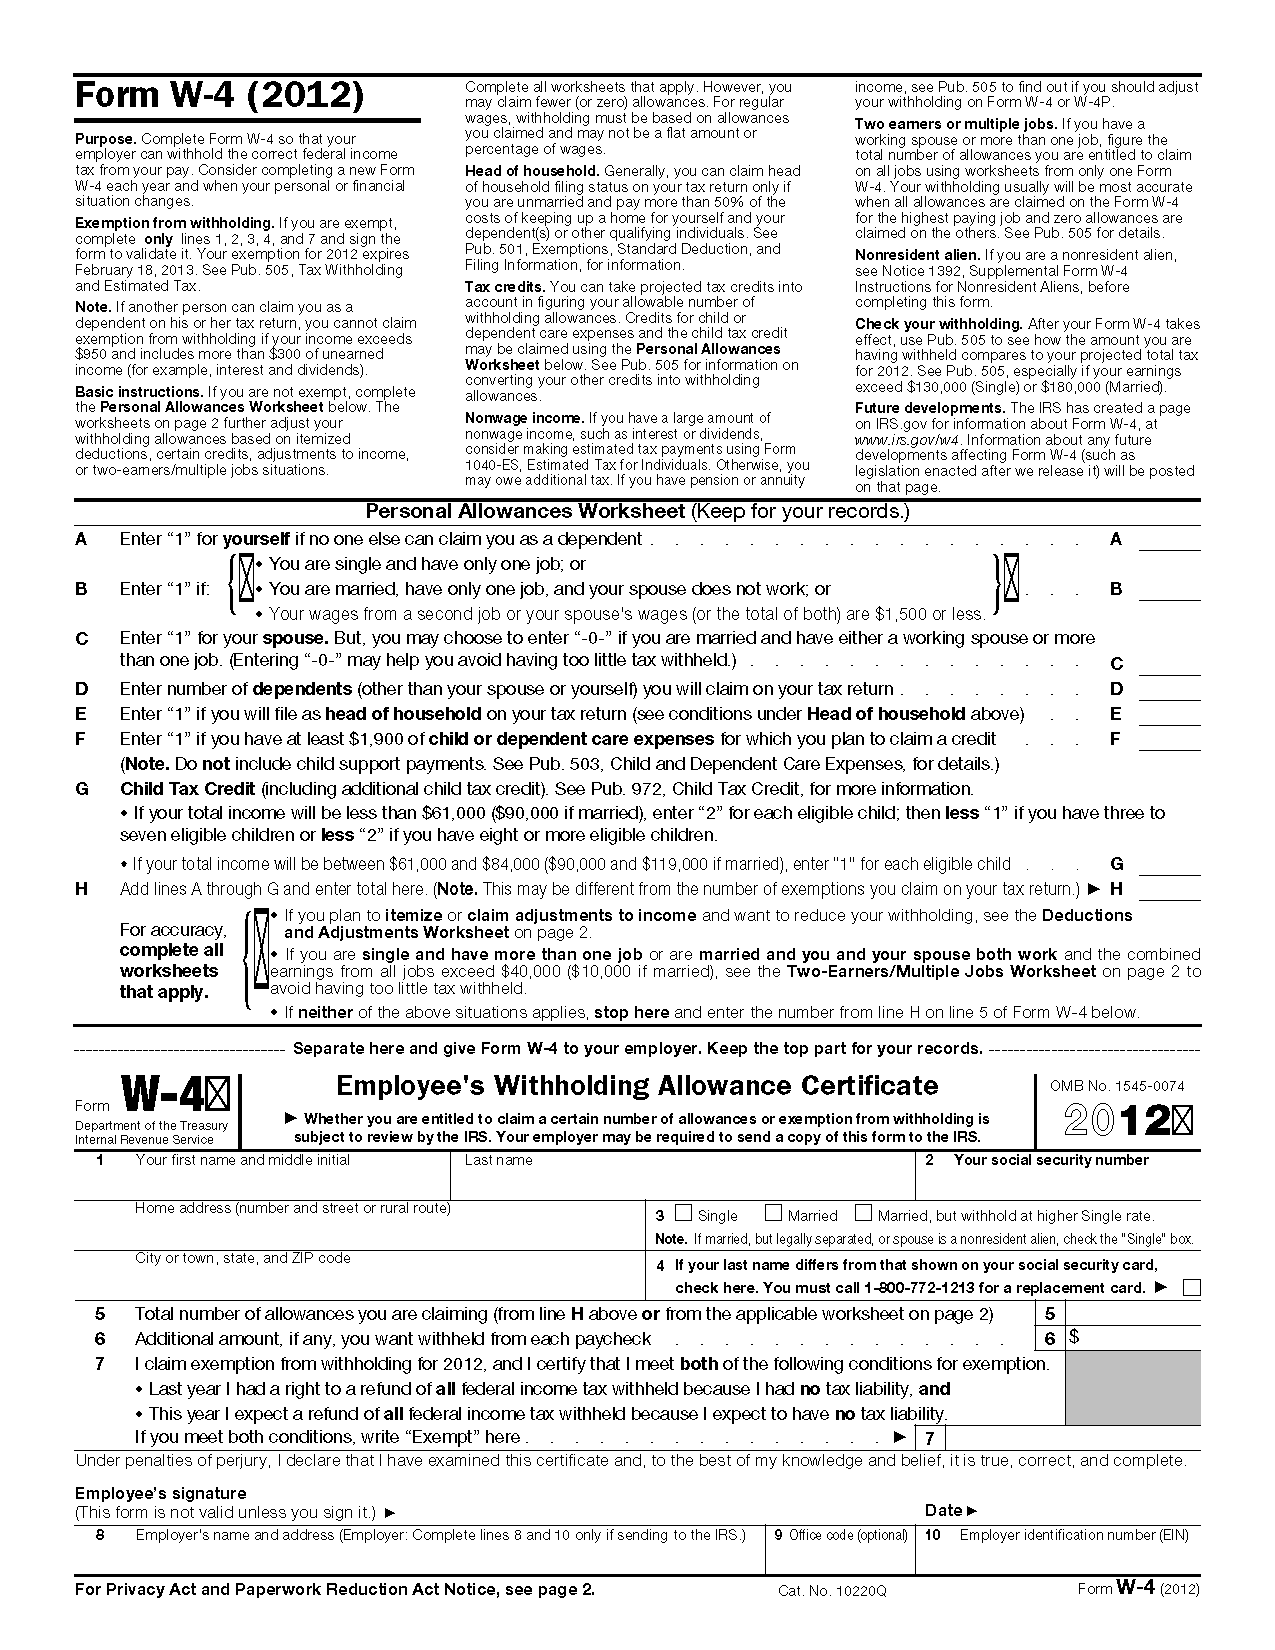 Form W4 Employees Withholding Allowance Certificate – W4 Deductions and Adjustments Worksheet